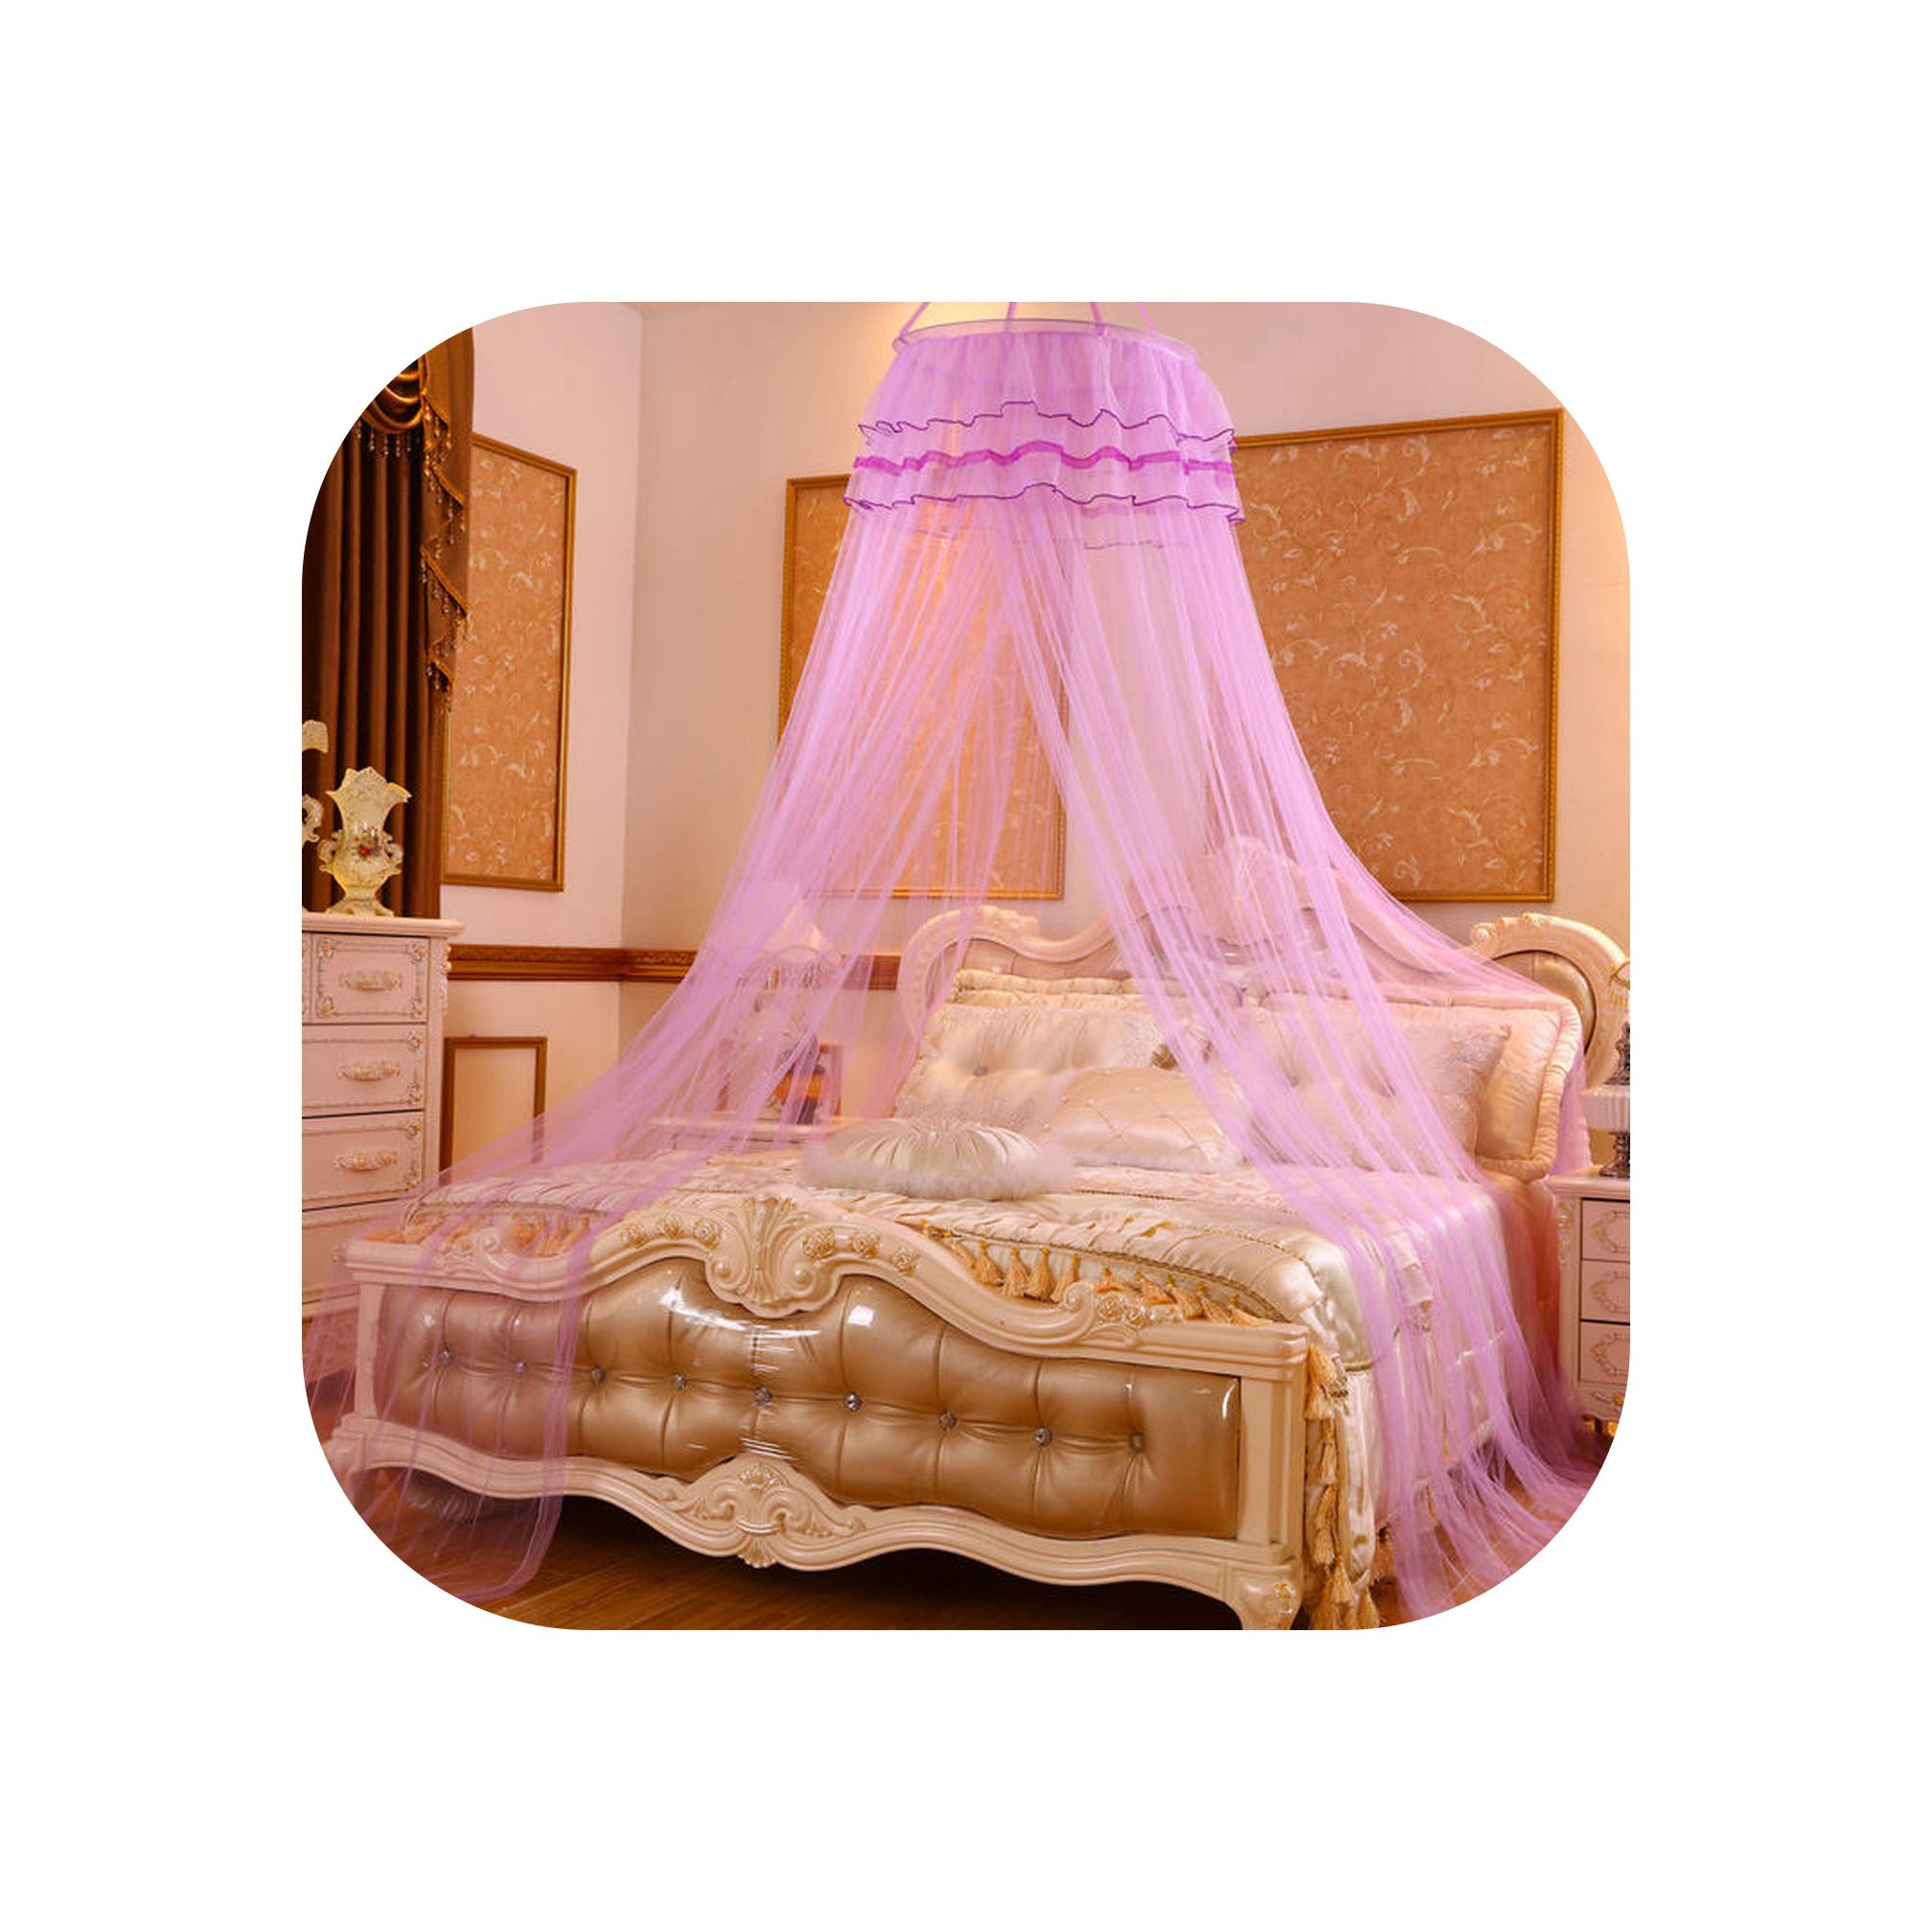 Children Bedroom Decor Mosquito Net European Romantic Mosquito Netting Circular Single Door Home Bed Tent Mesh 1PC,Purple,1.35m (4.5 feet) Bed